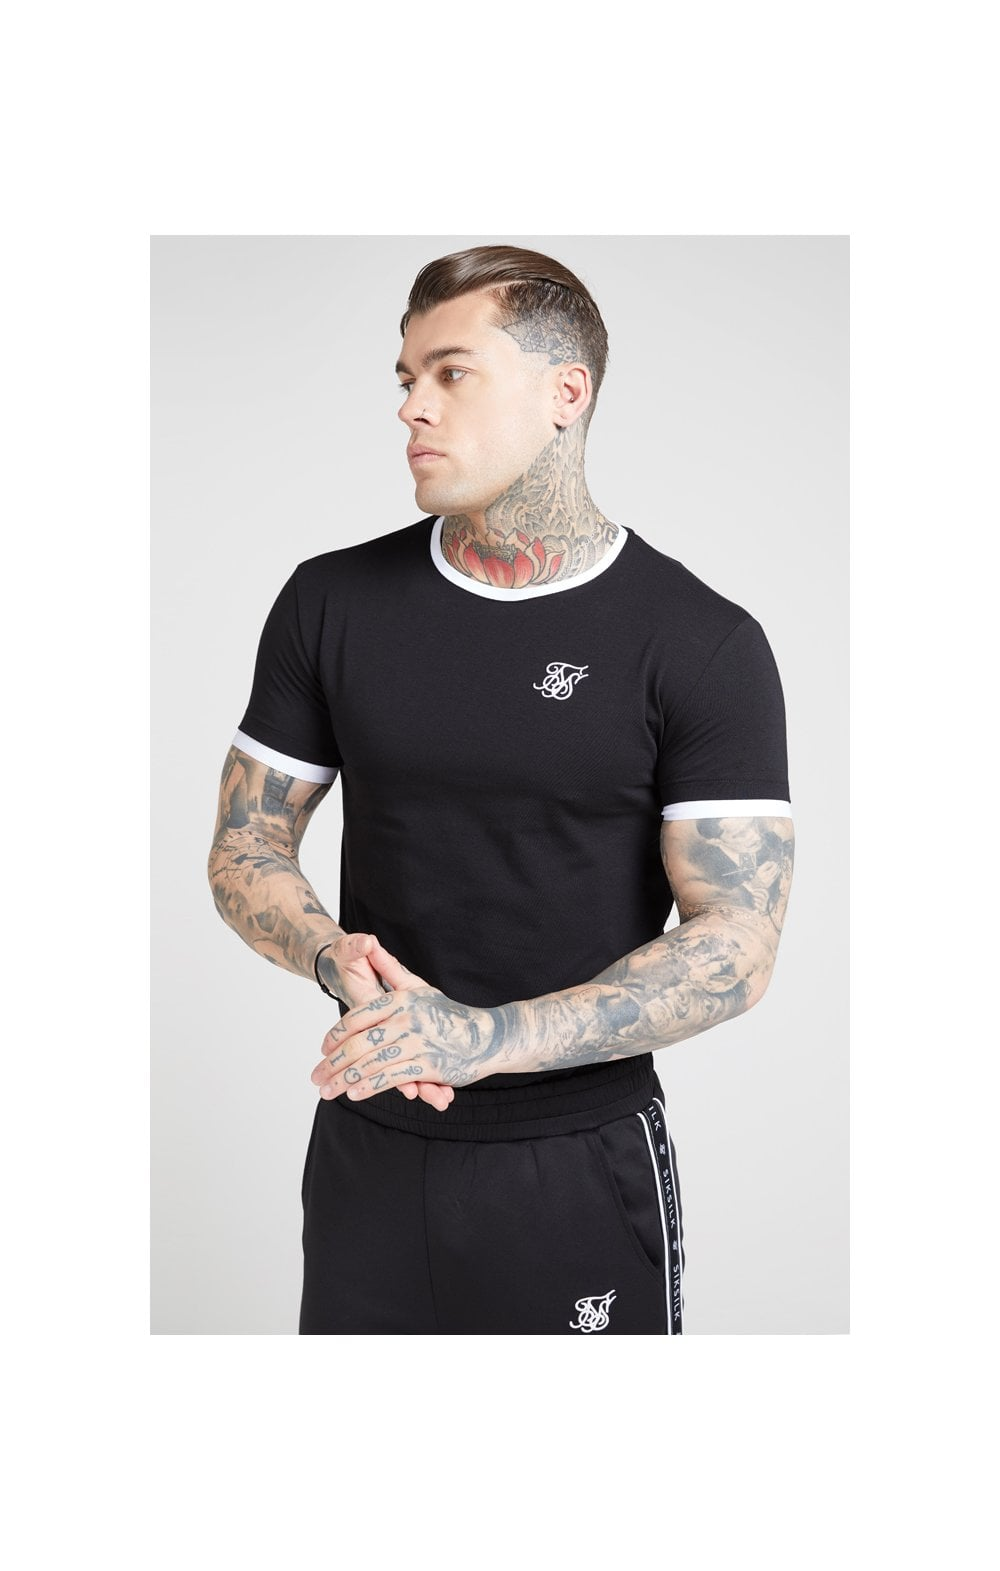 SikSilk S/S Inset Straight Hem Ringer Gym Tee – Black & White (1)